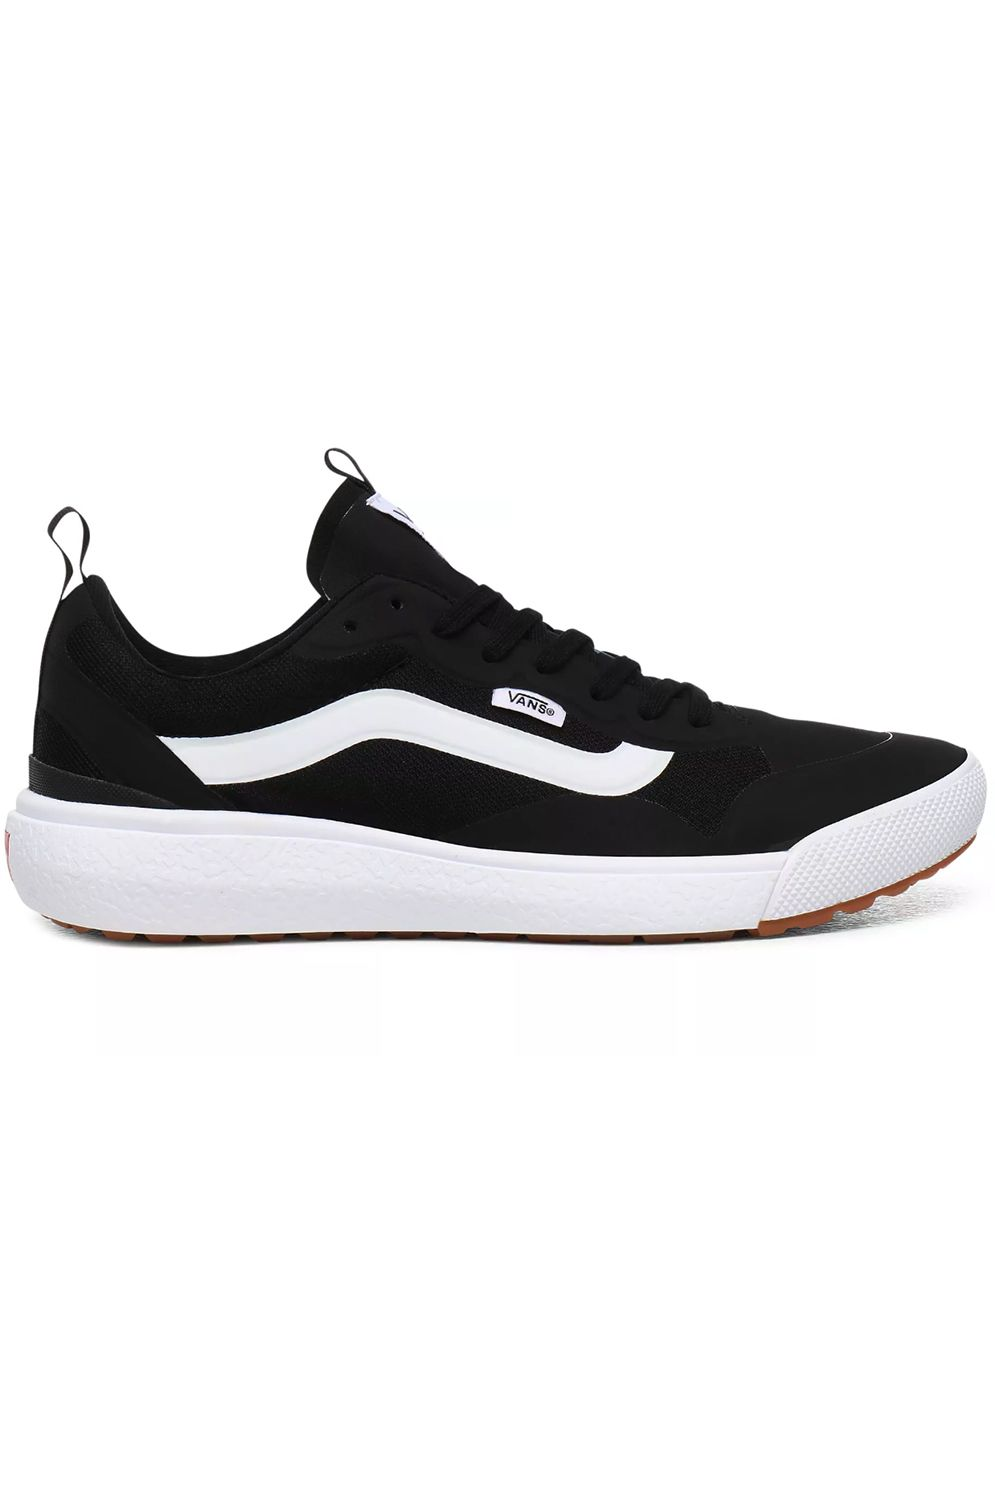 Vans Shoes ULTRARANGE EXO Black